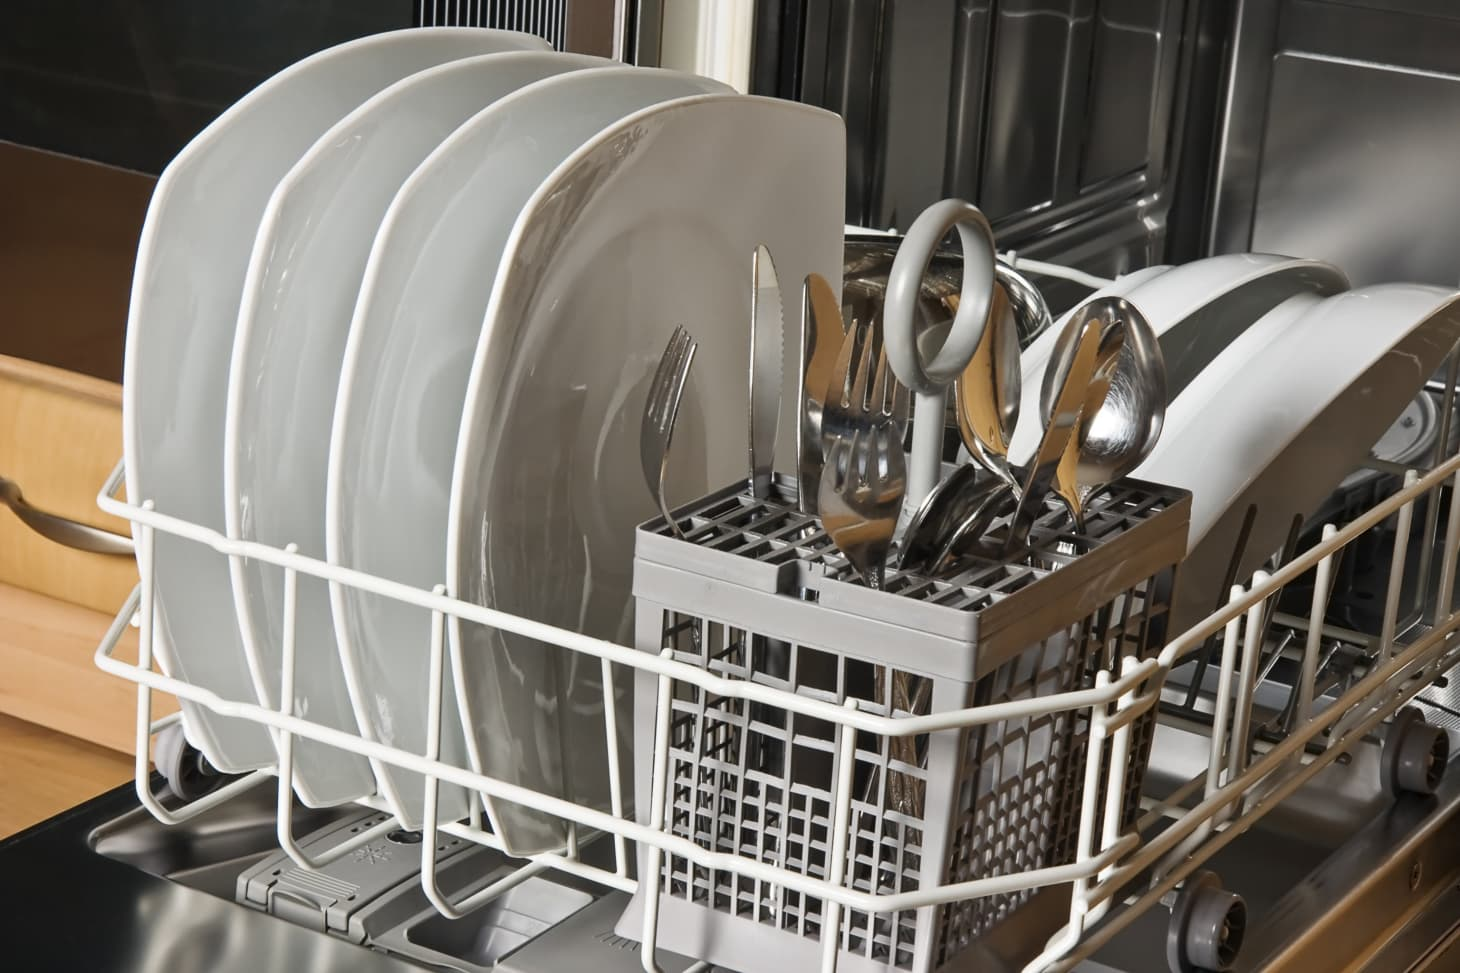 10 Tips to Help the Dishwasher Run Better | Kitchn